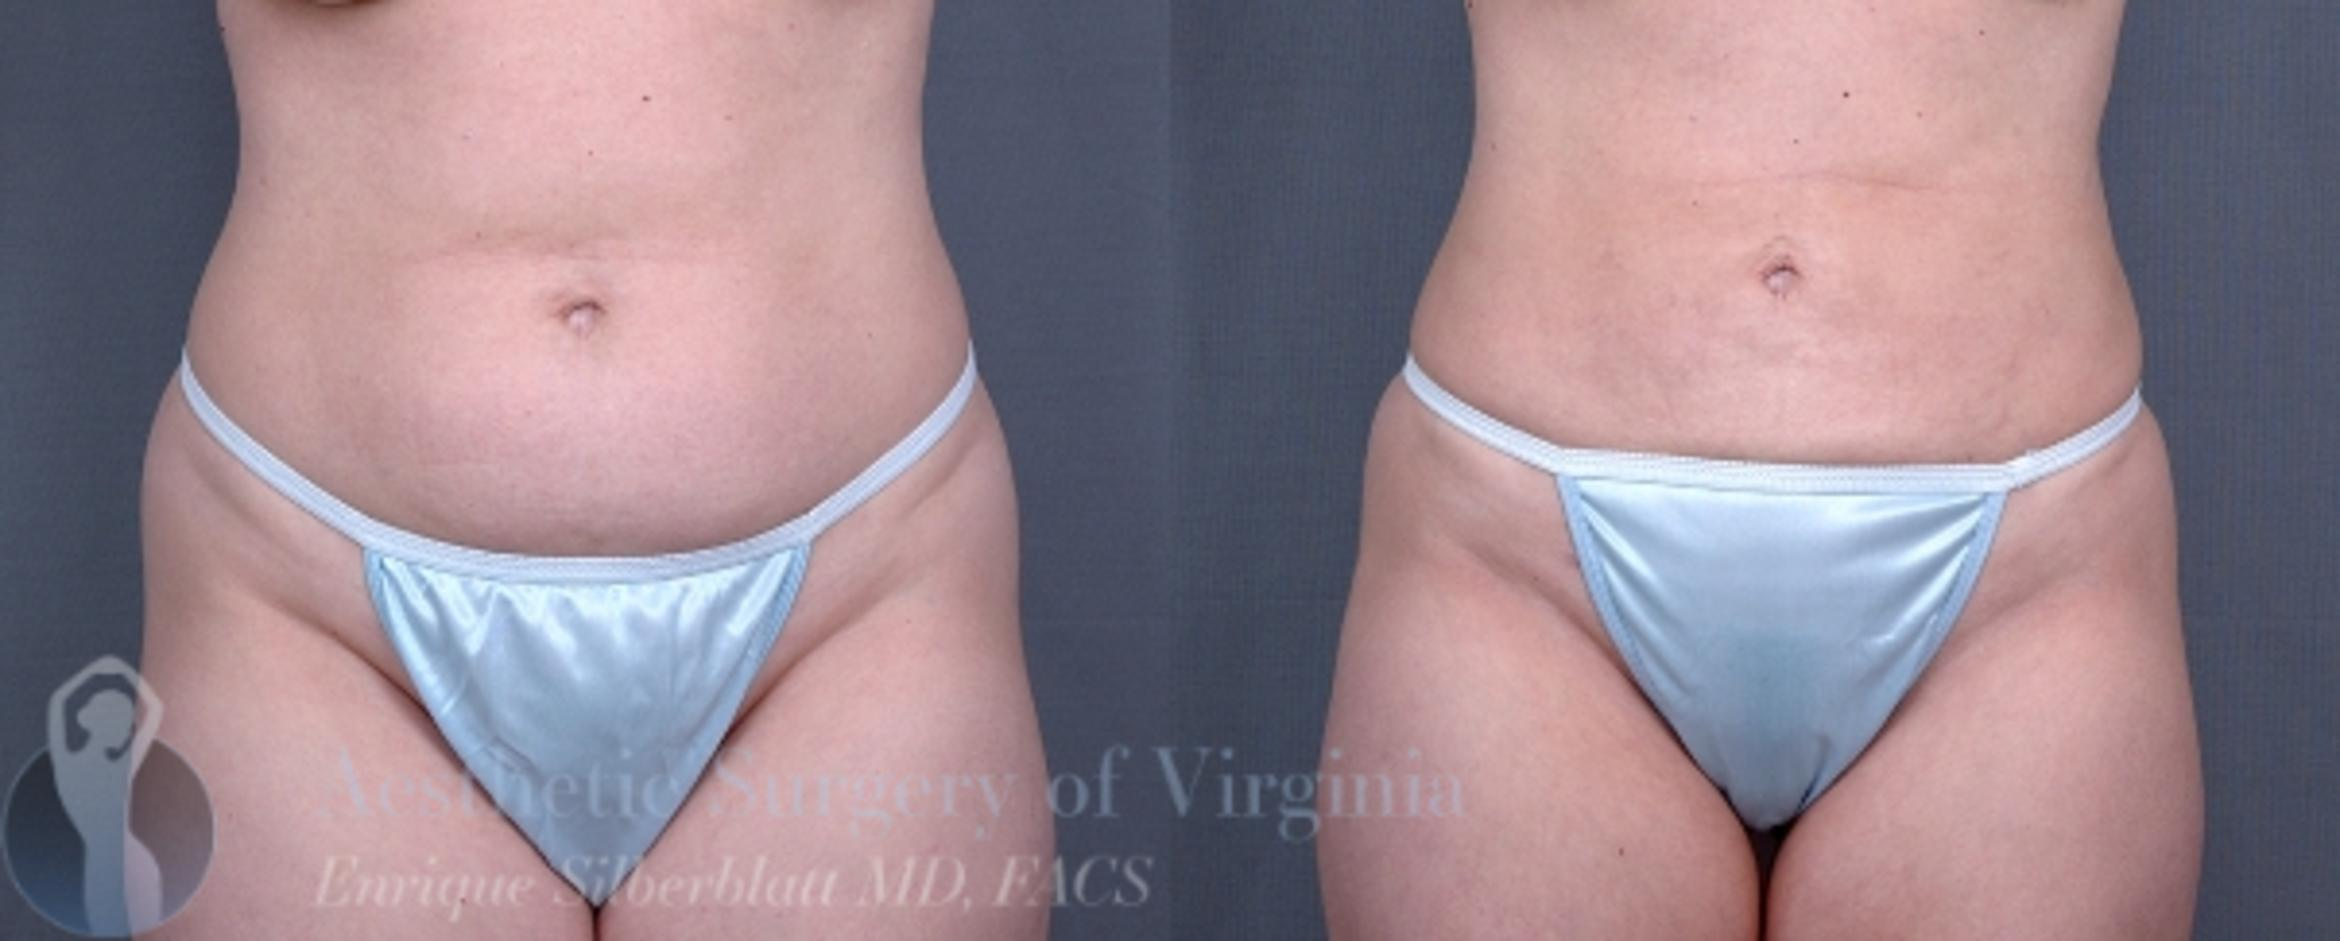 Liposuction Case 34 Before & After View #1 | Roanoke, VA | Aesthetic Surgery of Virginia: Enrique Silberblatt, MD